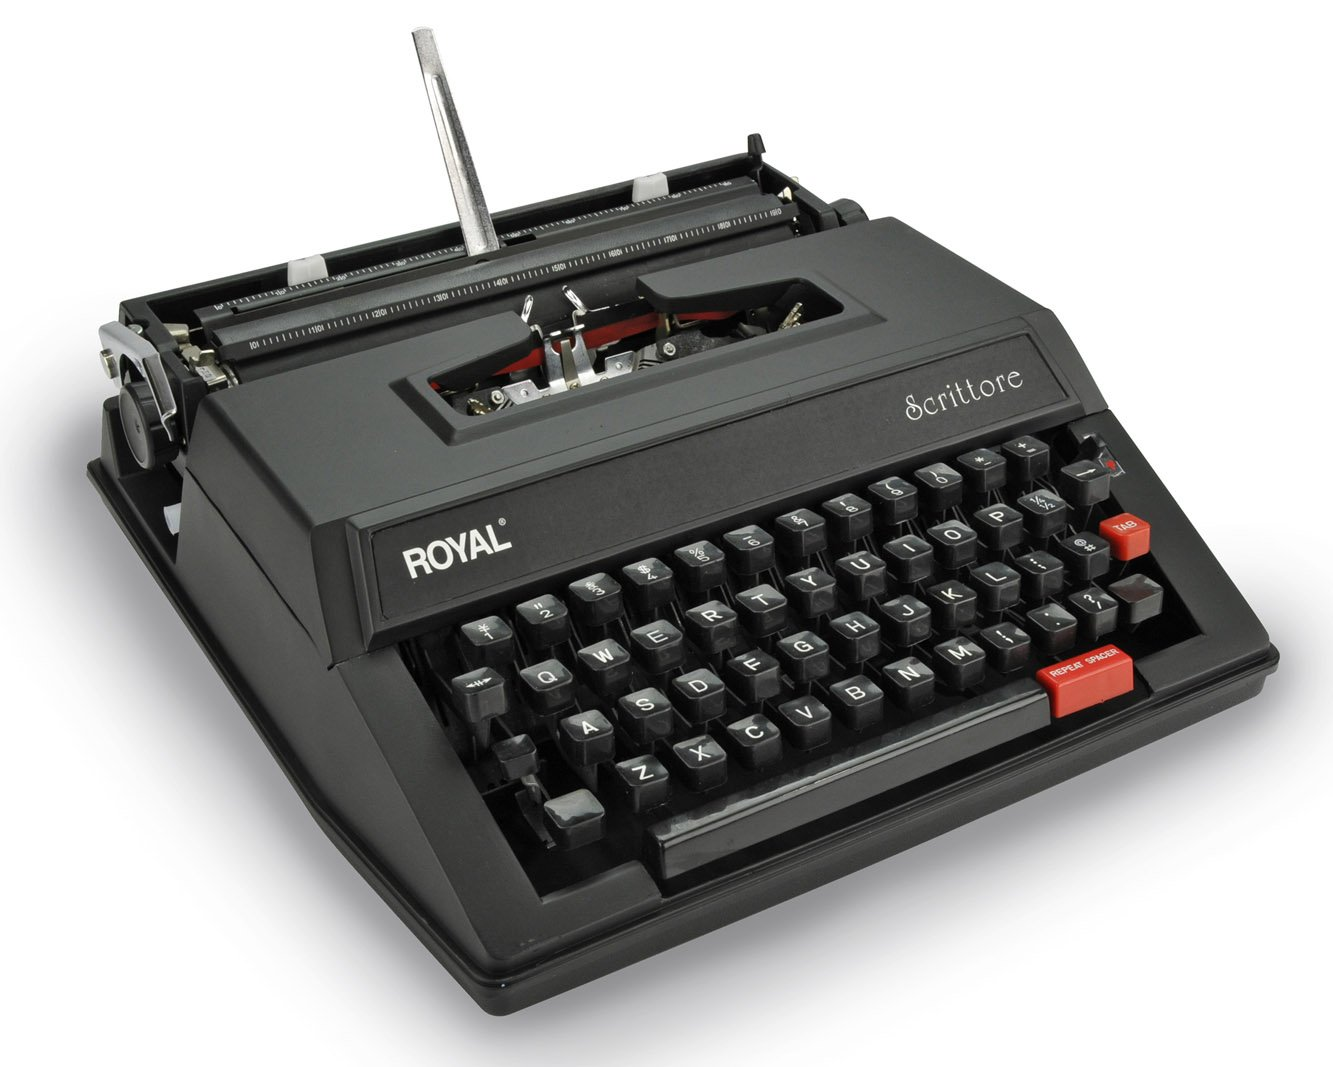 PCR-12 electric 199.95 31 88 12 yes yes yes yes ROYAL TYPEWRITER CO..